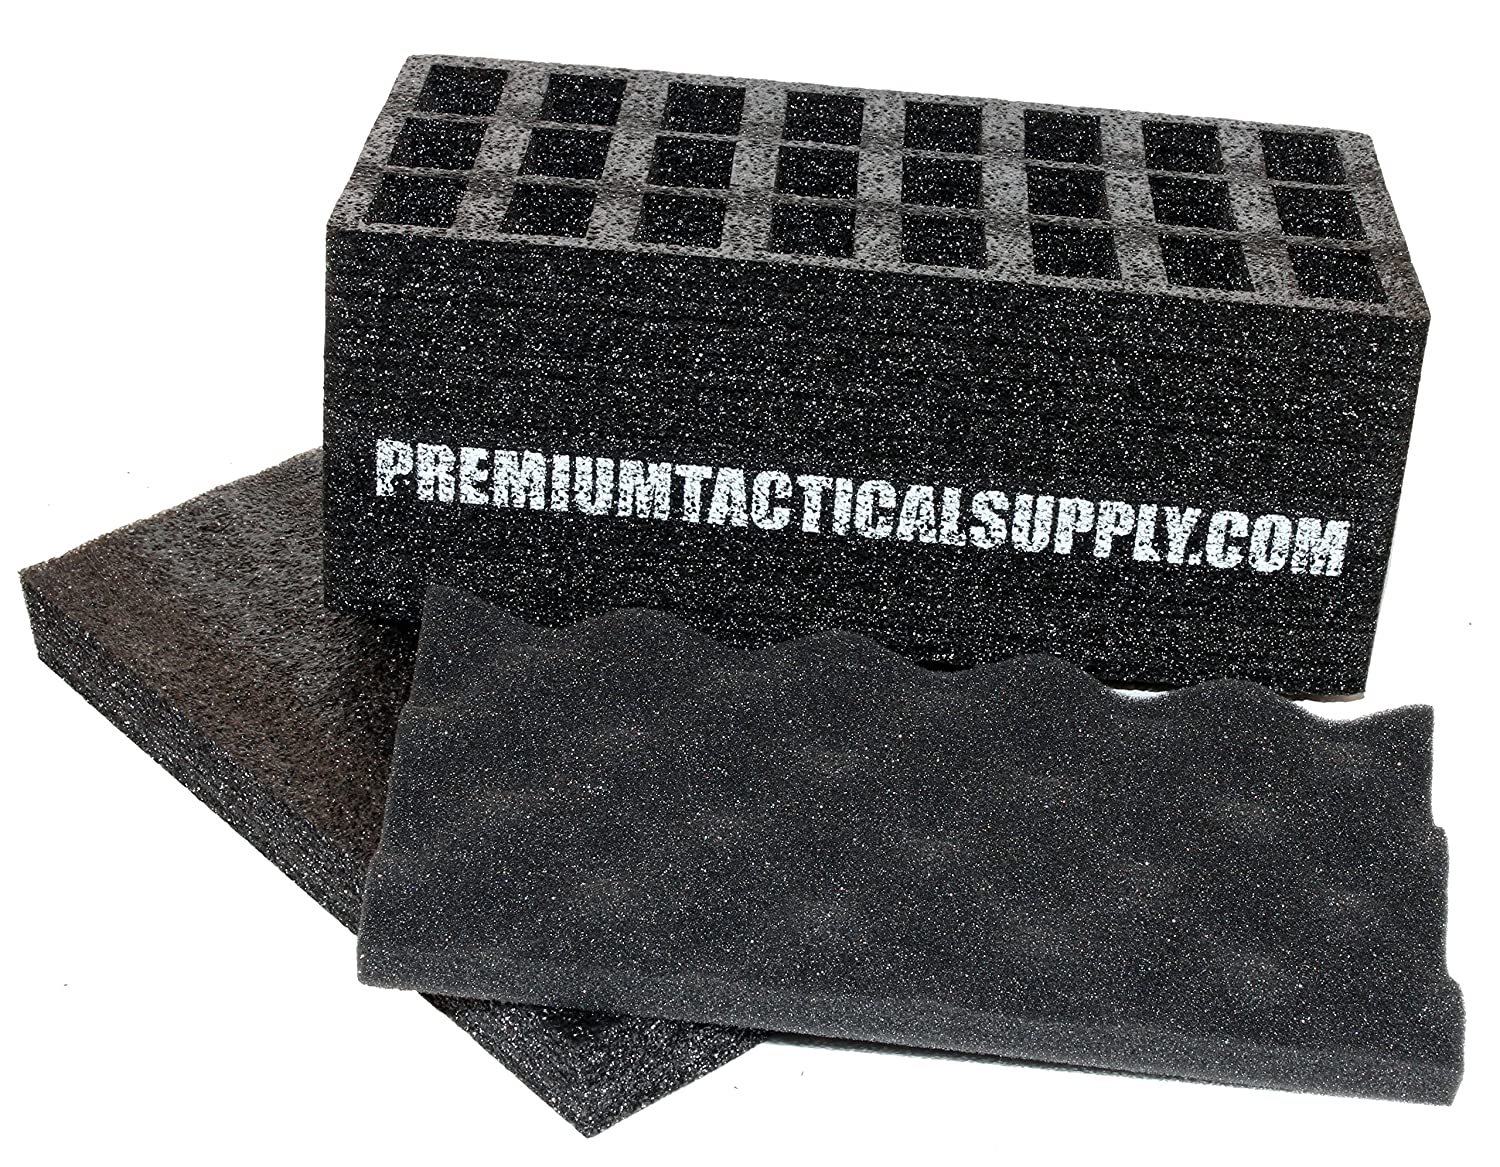 7 62 X 51 &  308 Military Cardboard Ammo Box Holds 20 Rounds 100 Box